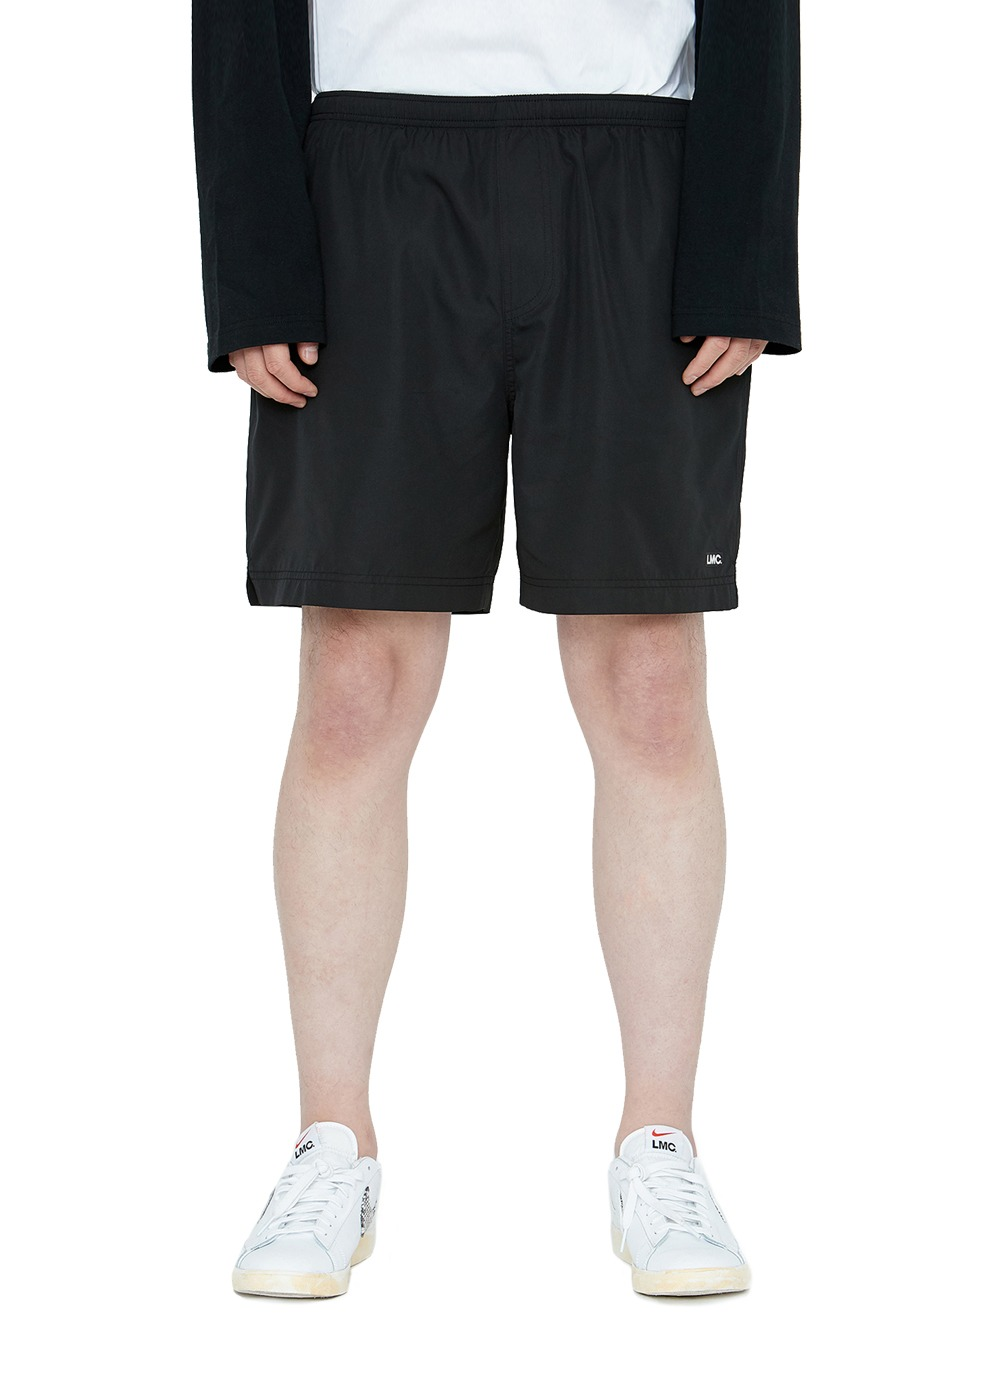 LMC IDEAL TRACK SHORTS black